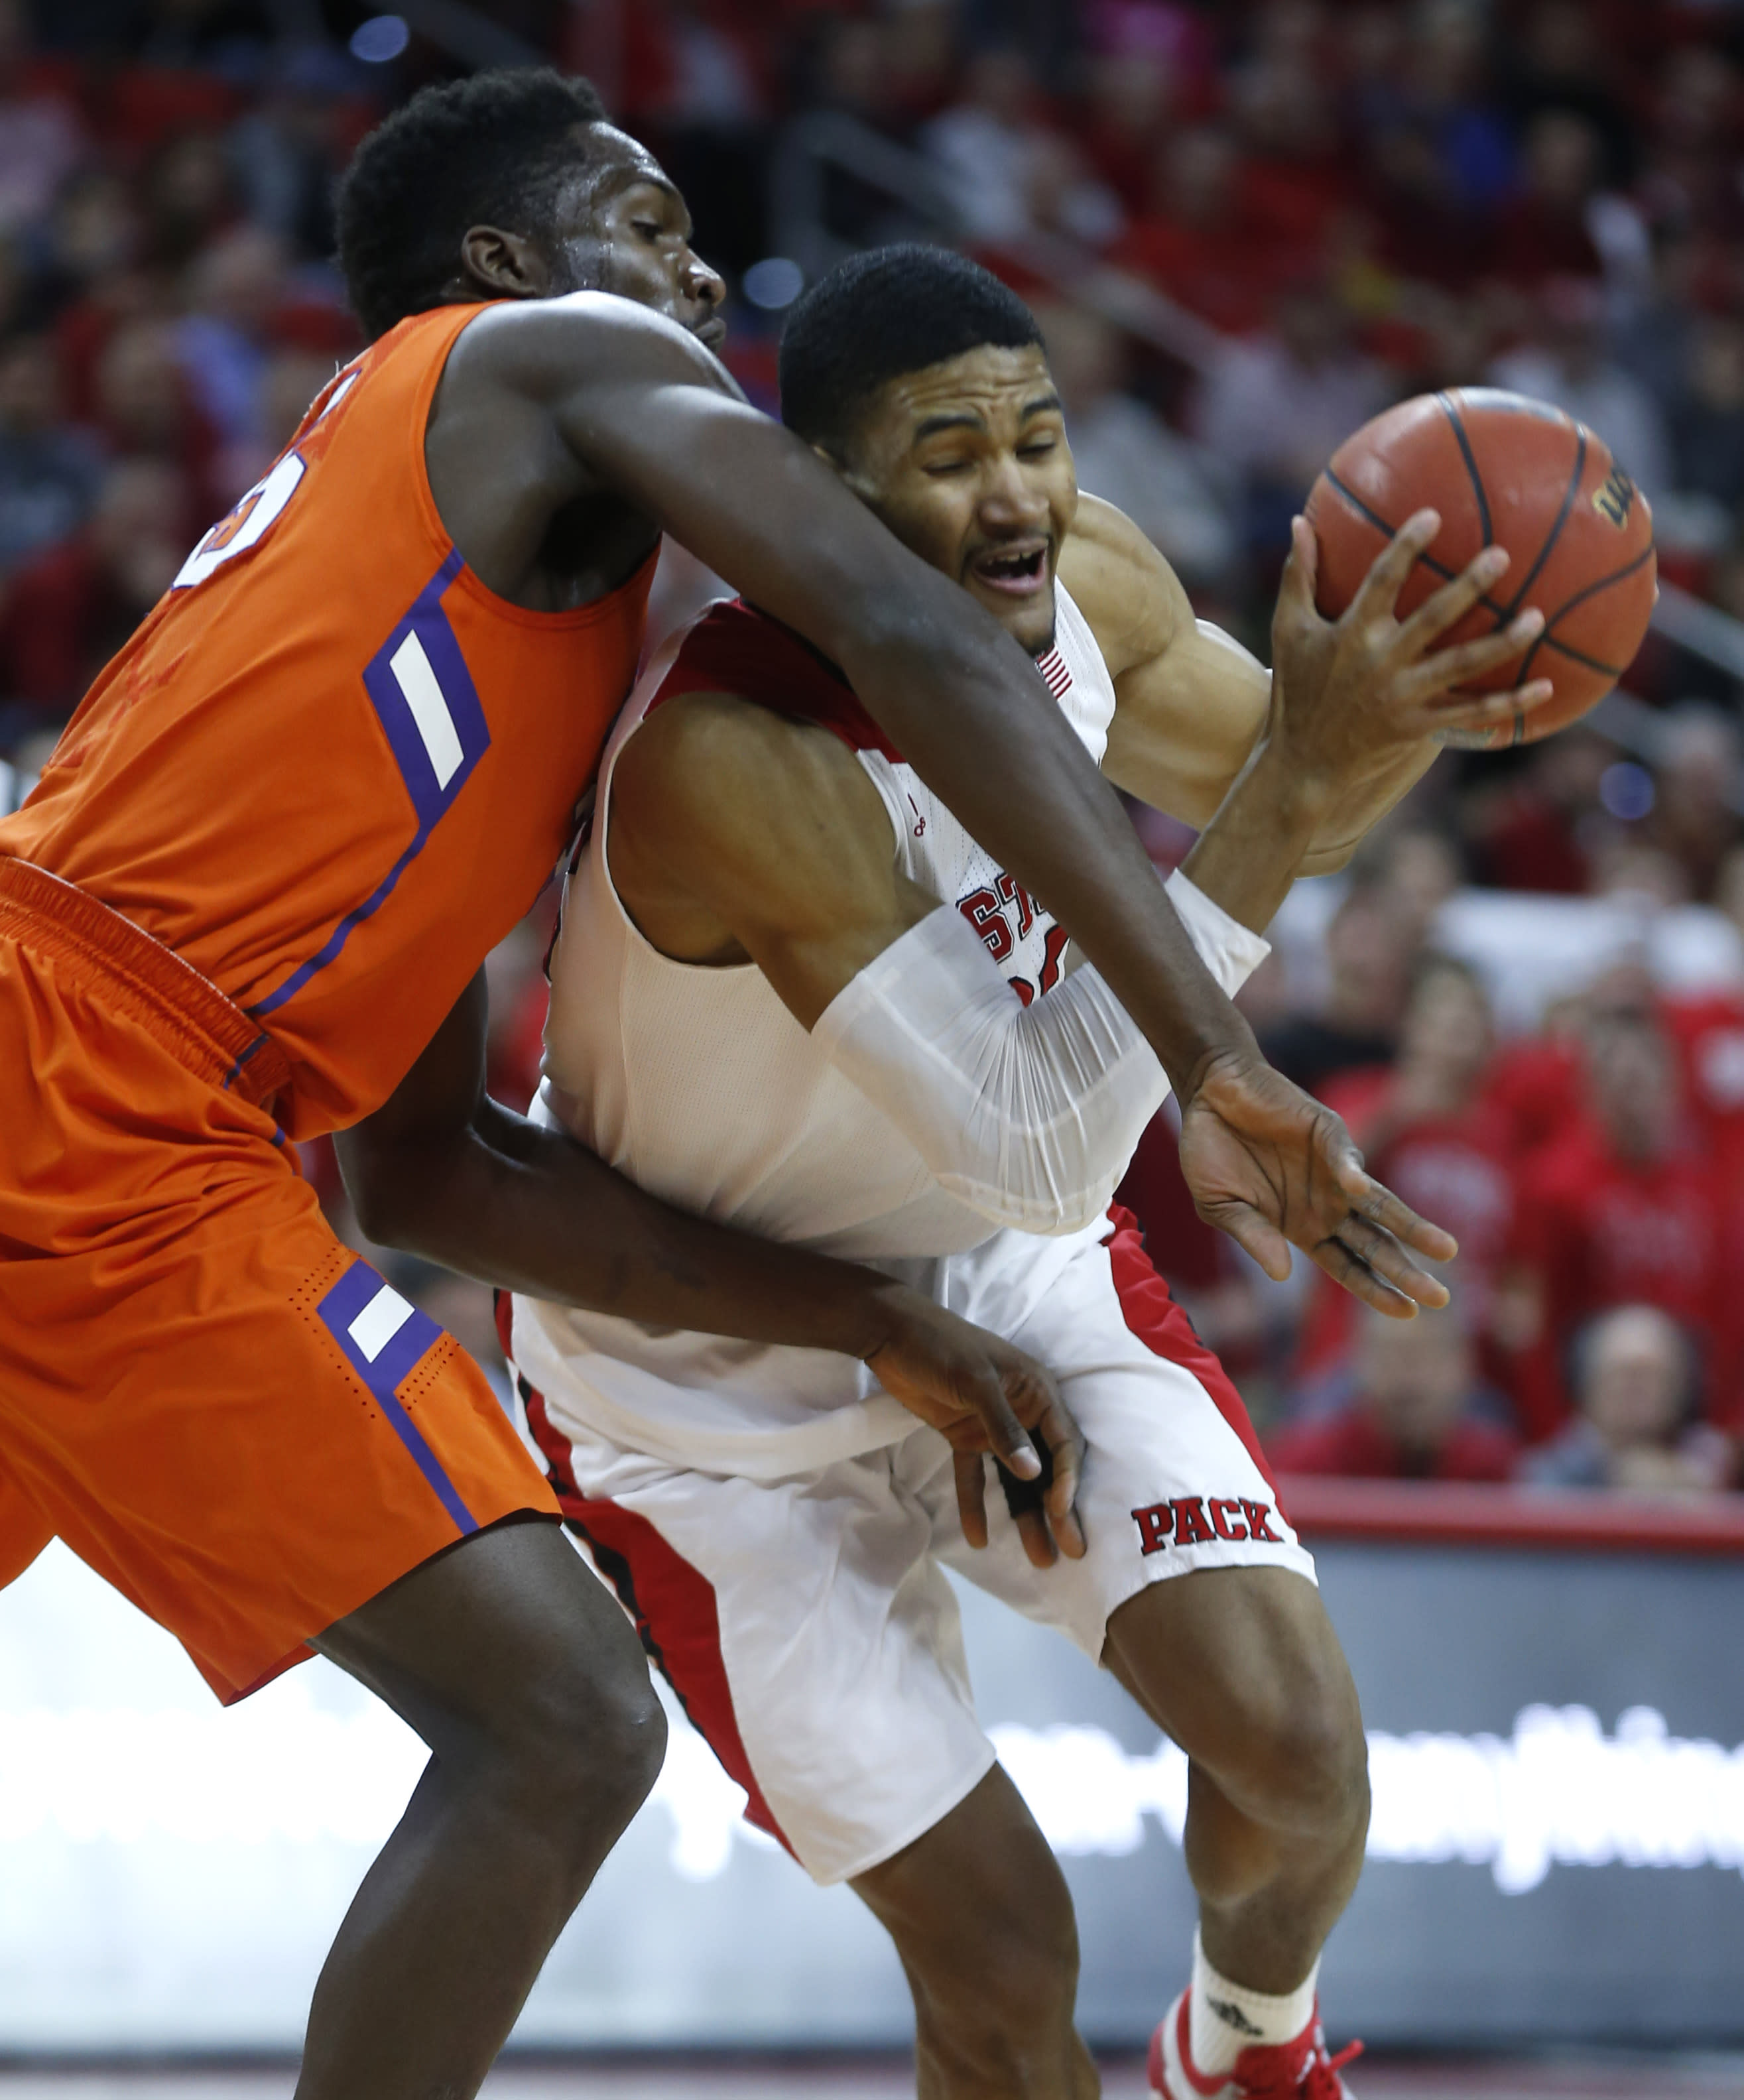 Clemson builds big 1st-half lead, holds off NC State 68-57